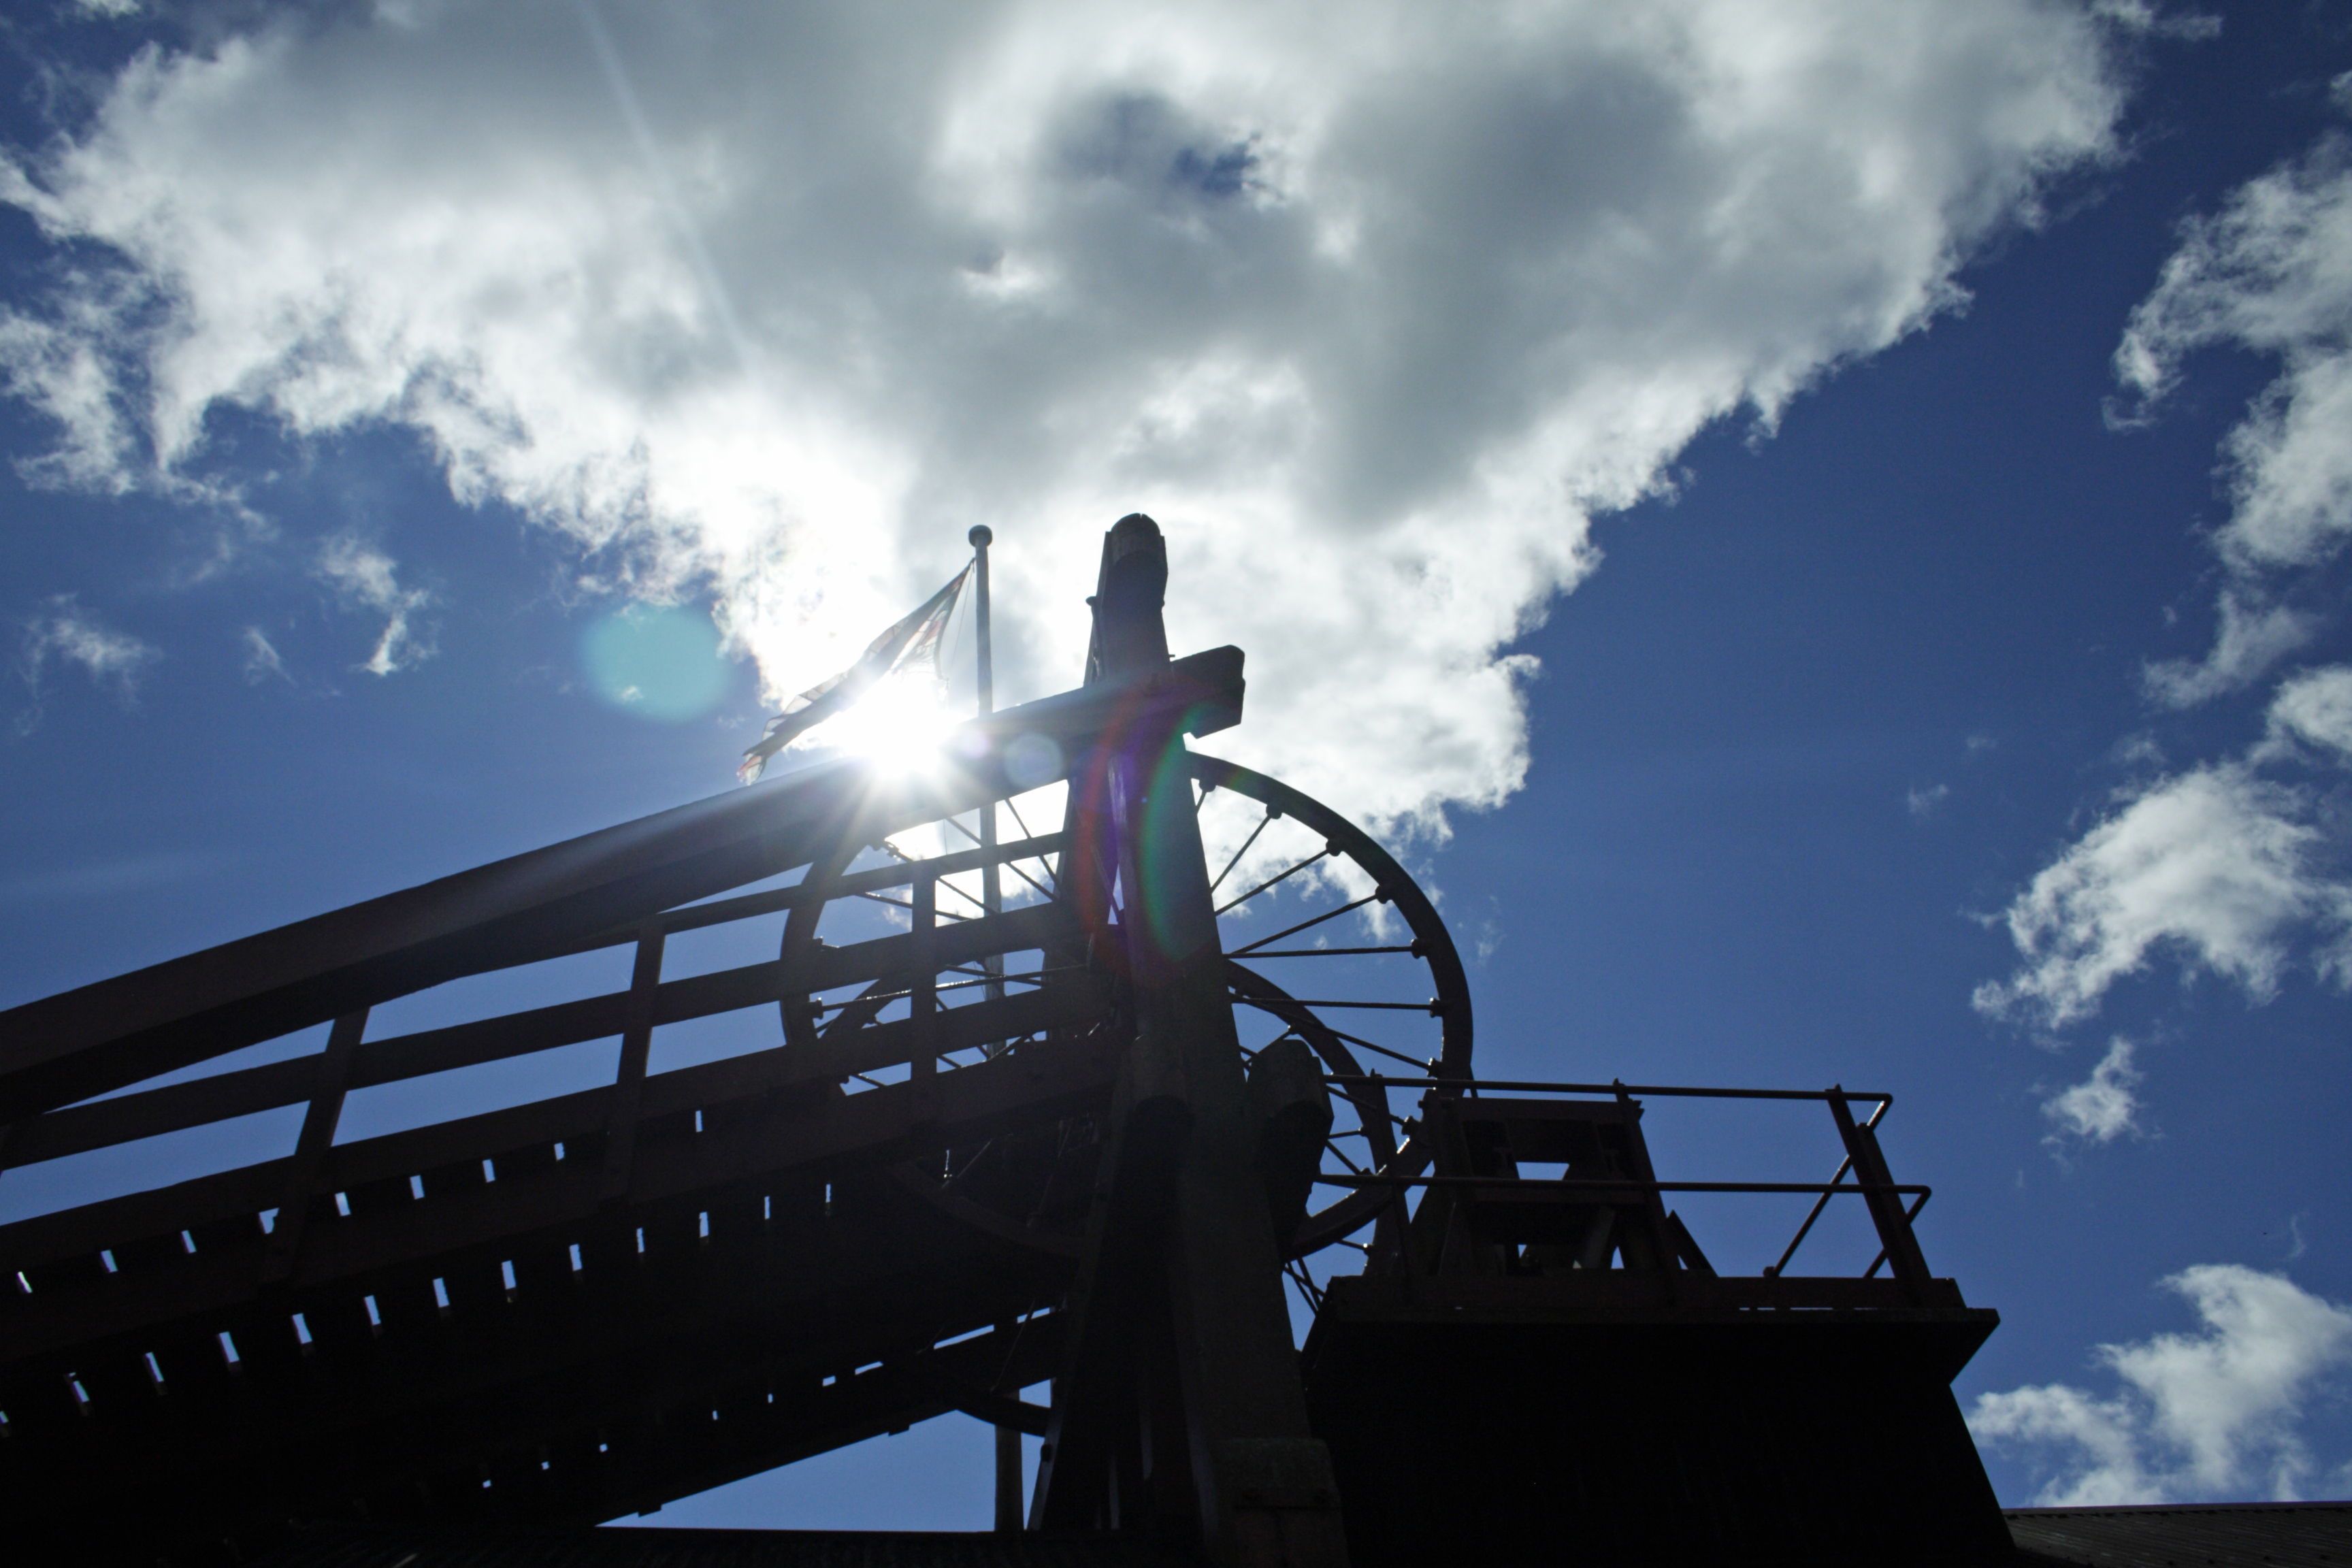 The colliery, Beamish Museum